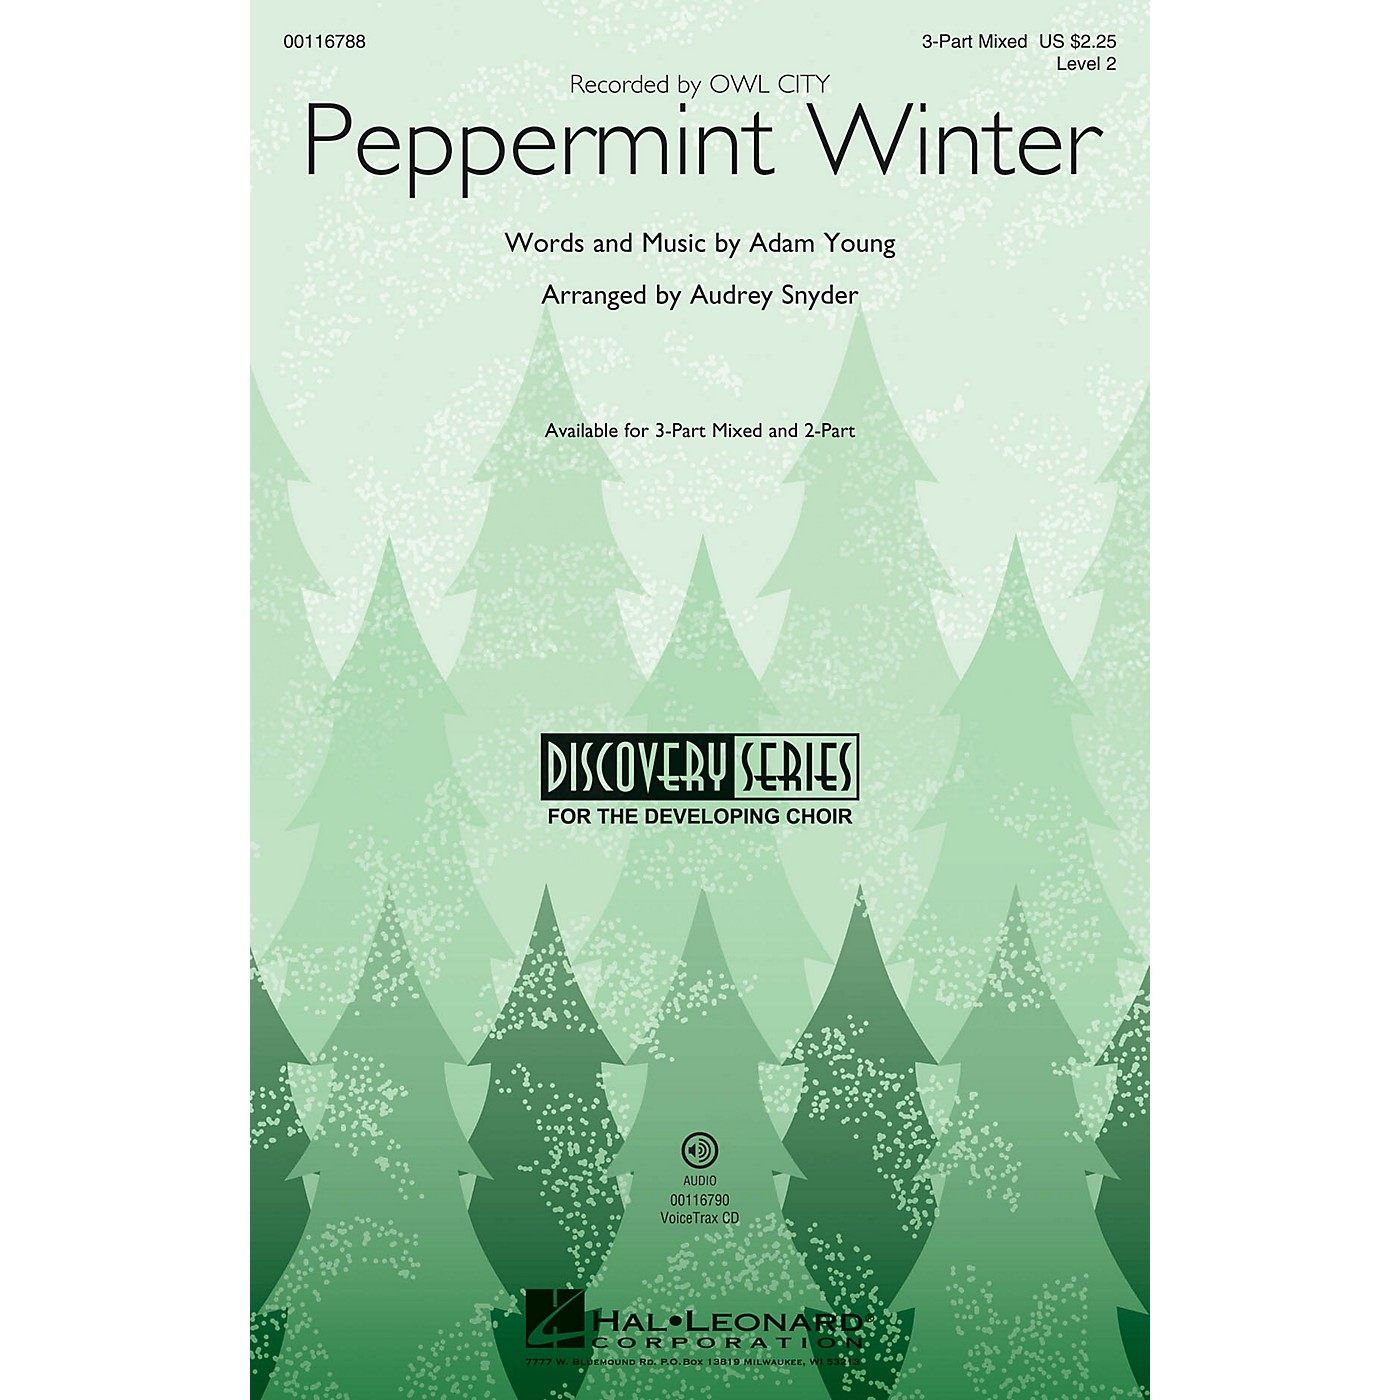 Hal Leonard Peppermint Winter (Discovery Level 2) VoiceTrax CD by Owl City Arranged by Audrey Snyder thumbnail